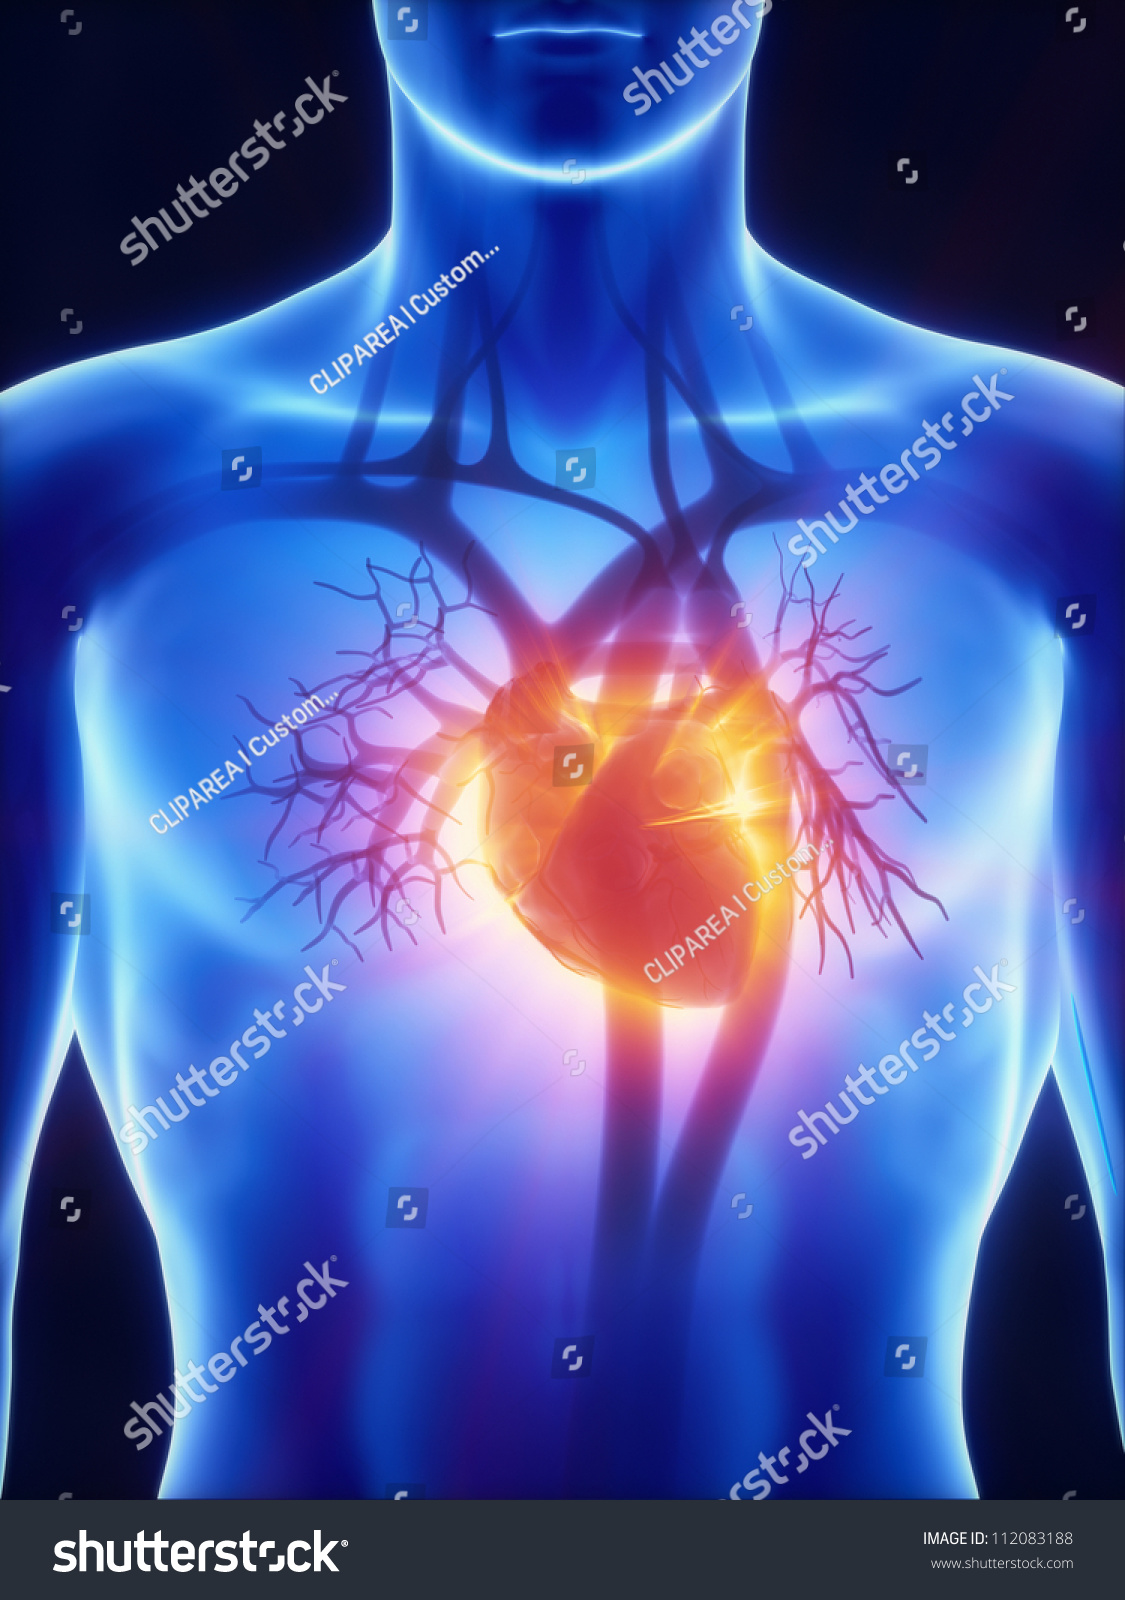 Cardiovascular System Glowing Heart Footage Available Stock